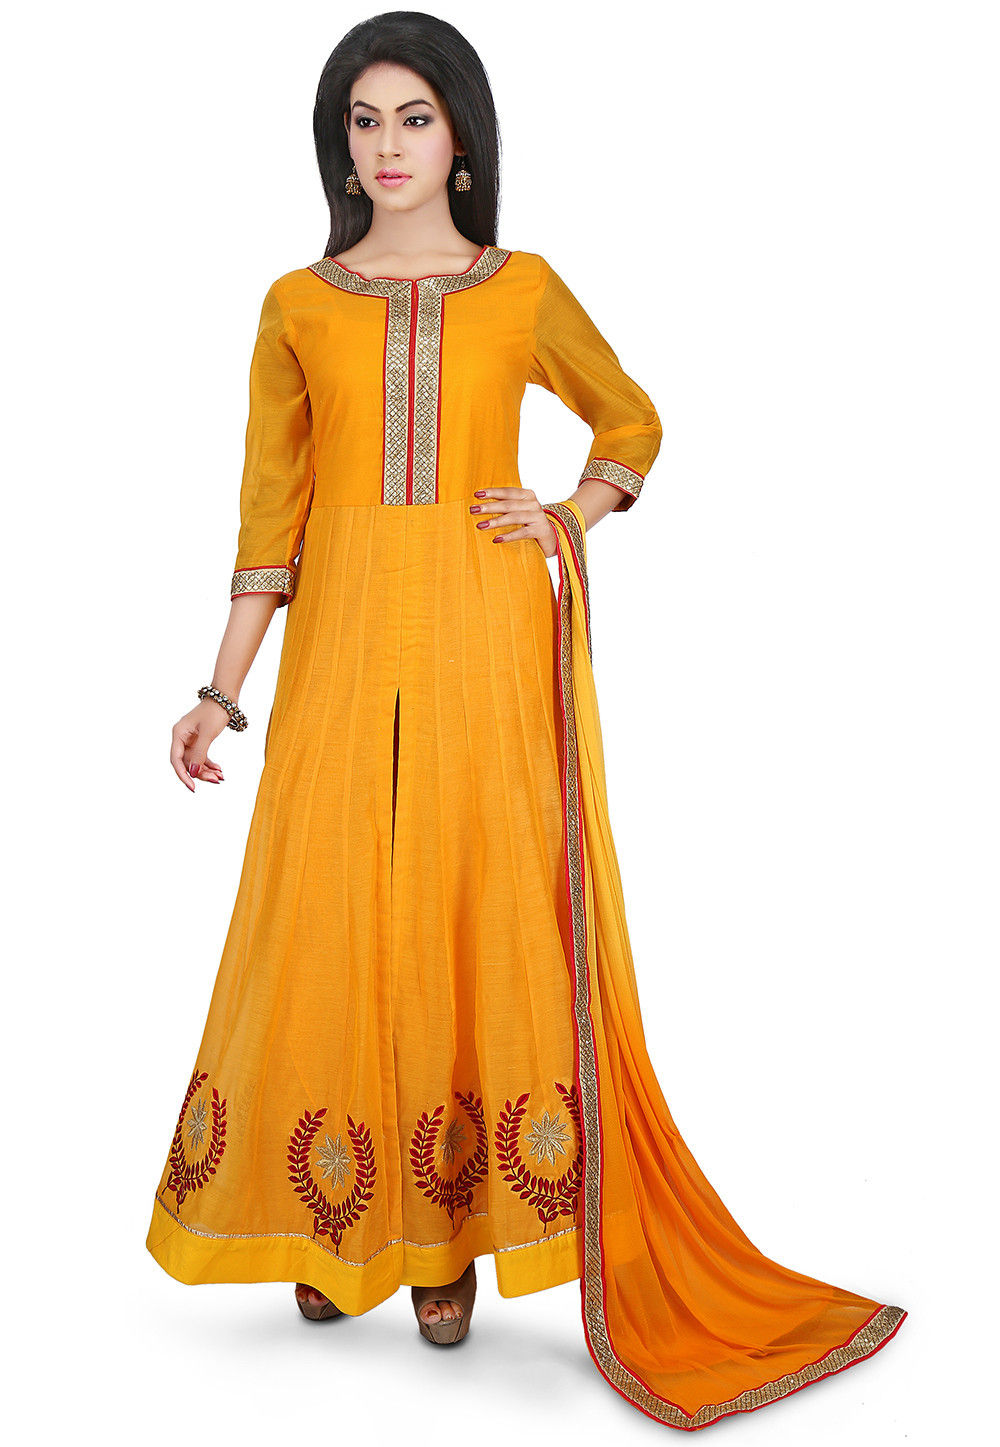 Embroidered Chanderi Cotton Abaya Style Suit in Mustard